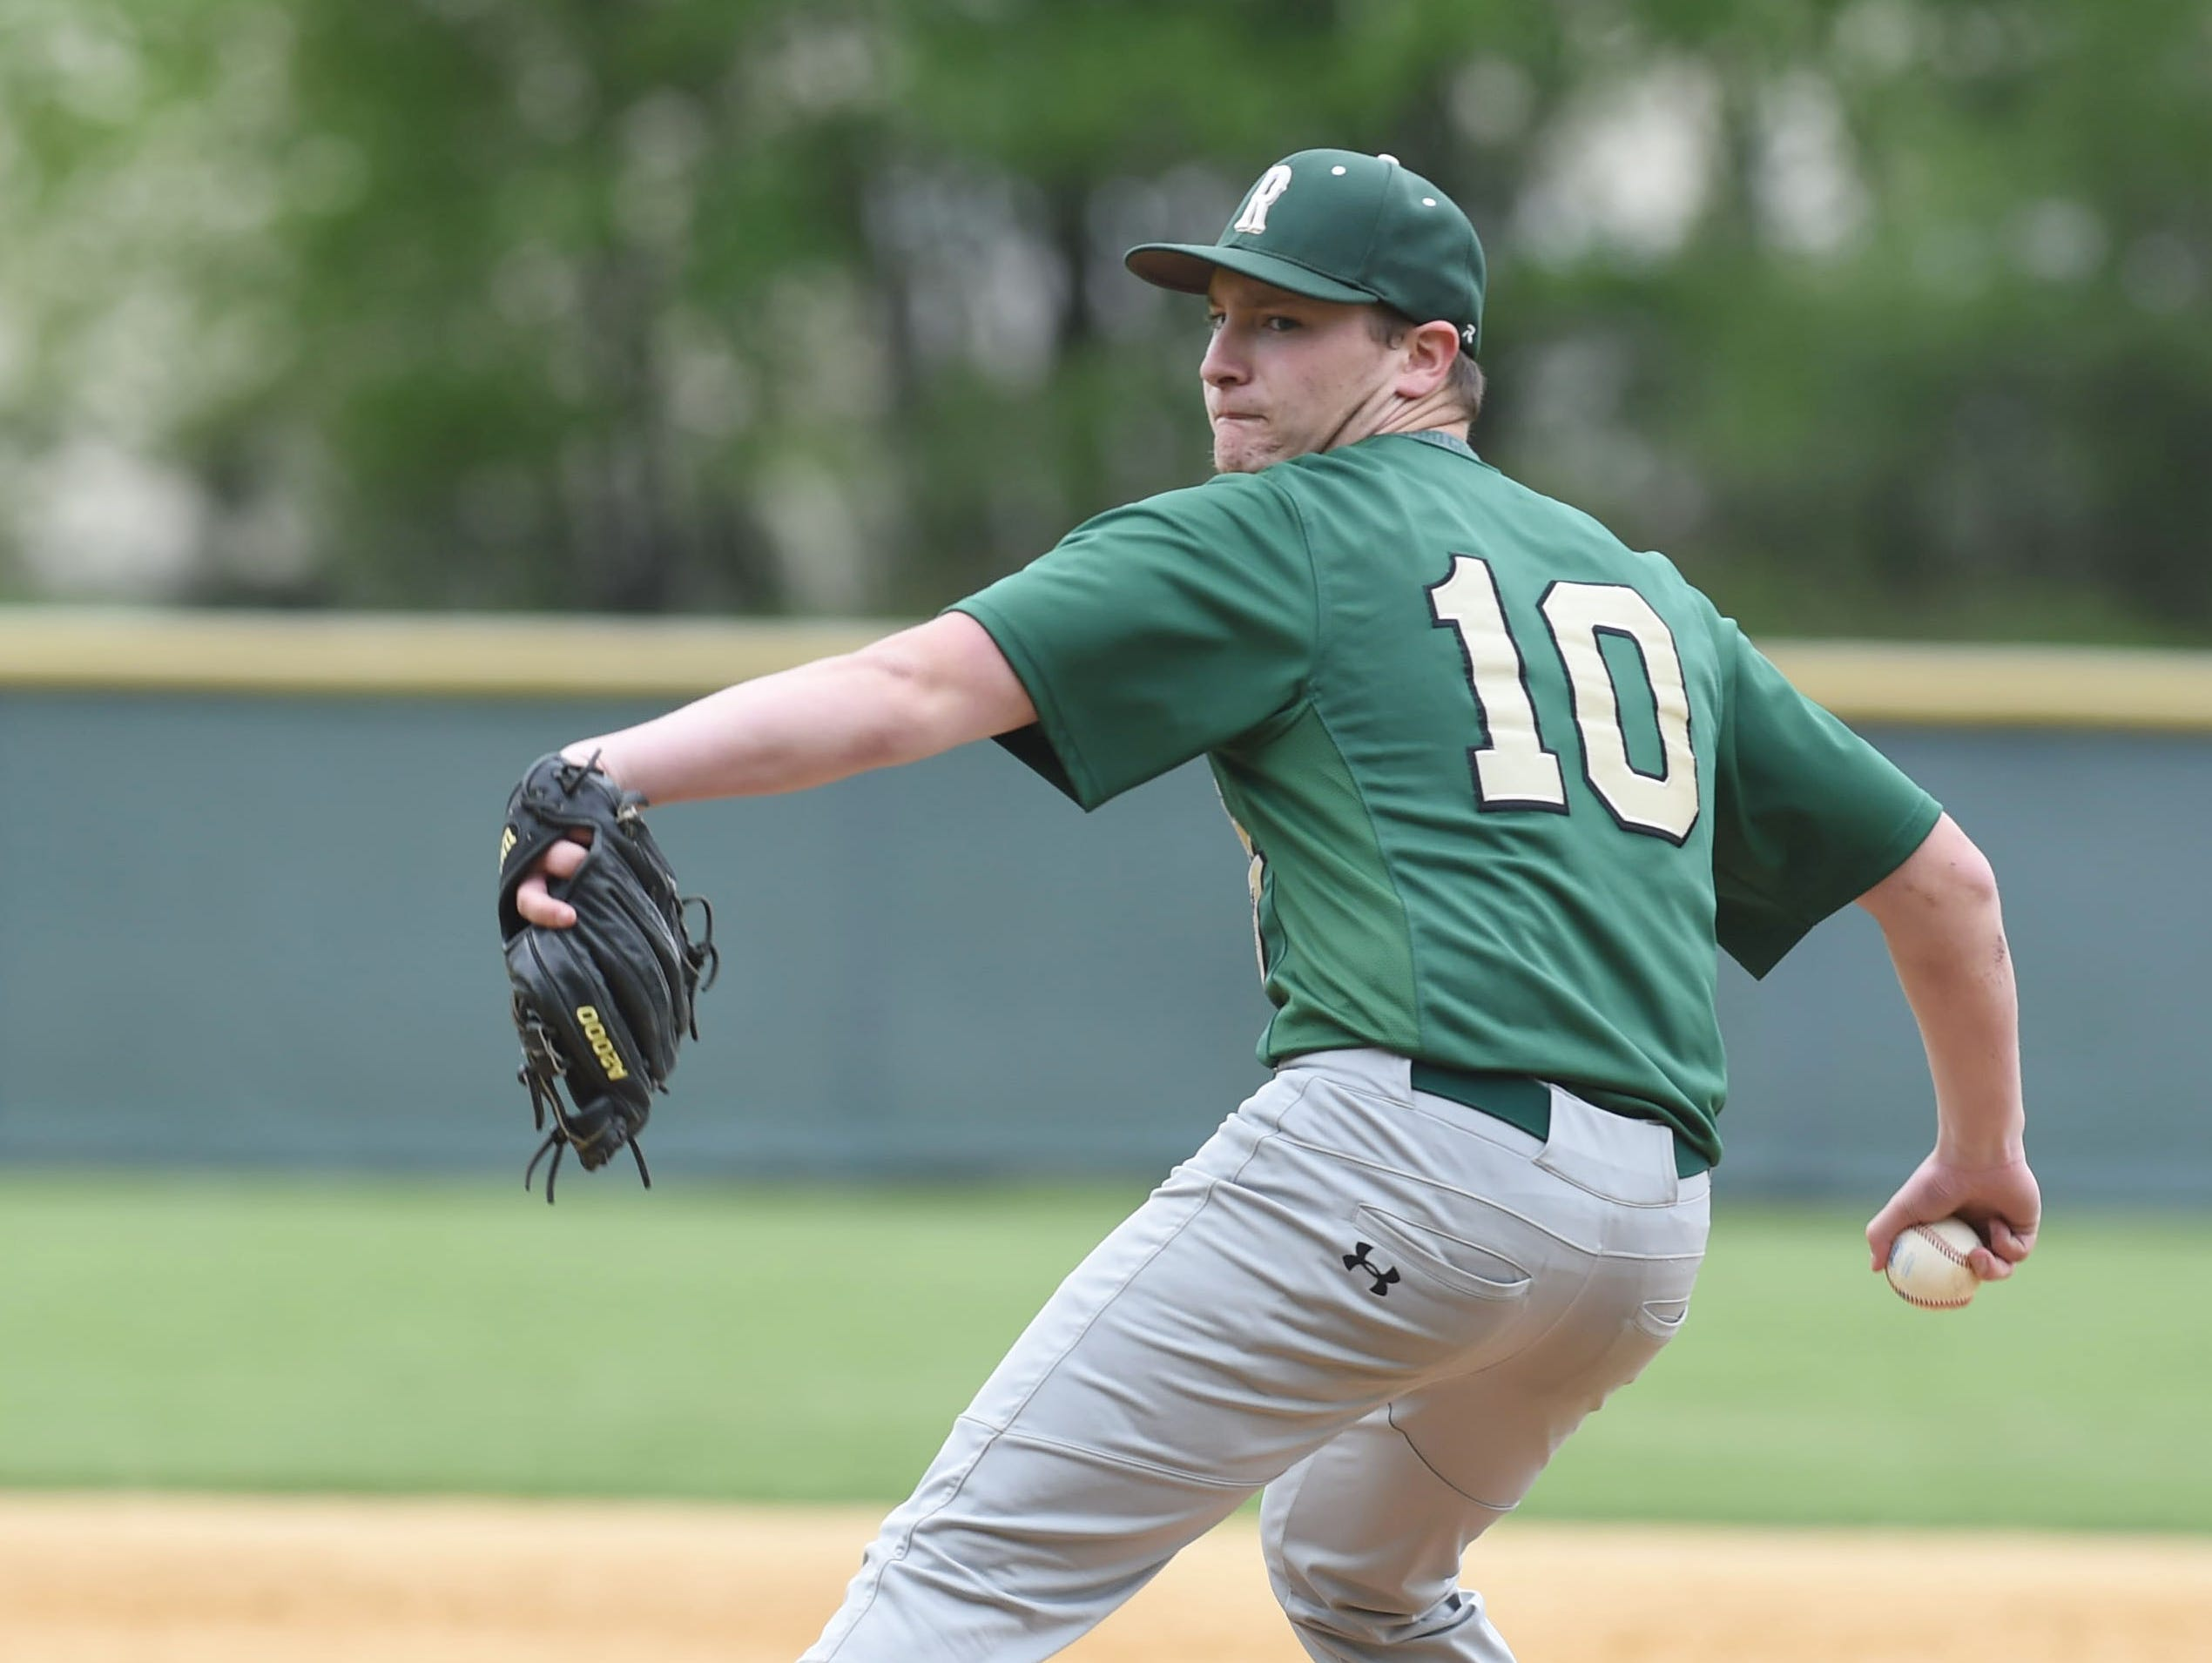 Roosevelt's Brandon Greenspan winds up a pitch during Thursday's game against Spackenkill.